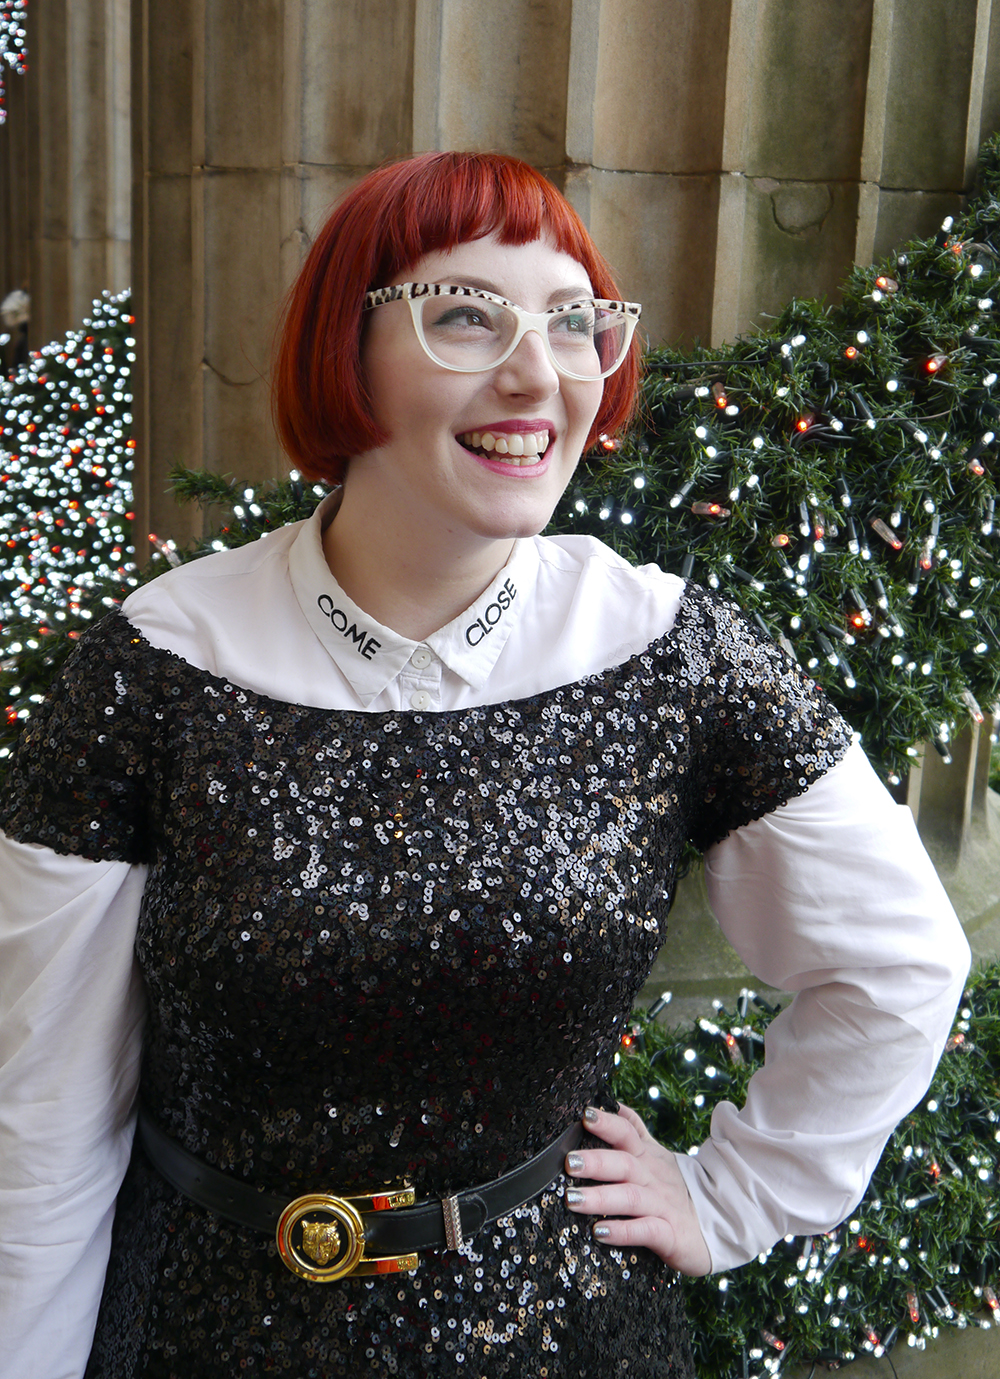 styled by, styled by helen, Christmas party outfit, party outfit, sequined outfit, sequined jumpsuit, glitter clutch bag, party clutch bag, SoS15, gin bag, gin clutch bag, festive party outfit inspiration, black sequined jumpsuit, catsuit, faux tuxedo style, scottish blogger, fashion blogger style, Edinburgh blogger, red head, Spex Pistol glasses, statement glasess, shop small, London designer, UK designer, independent designer UK, statement bag